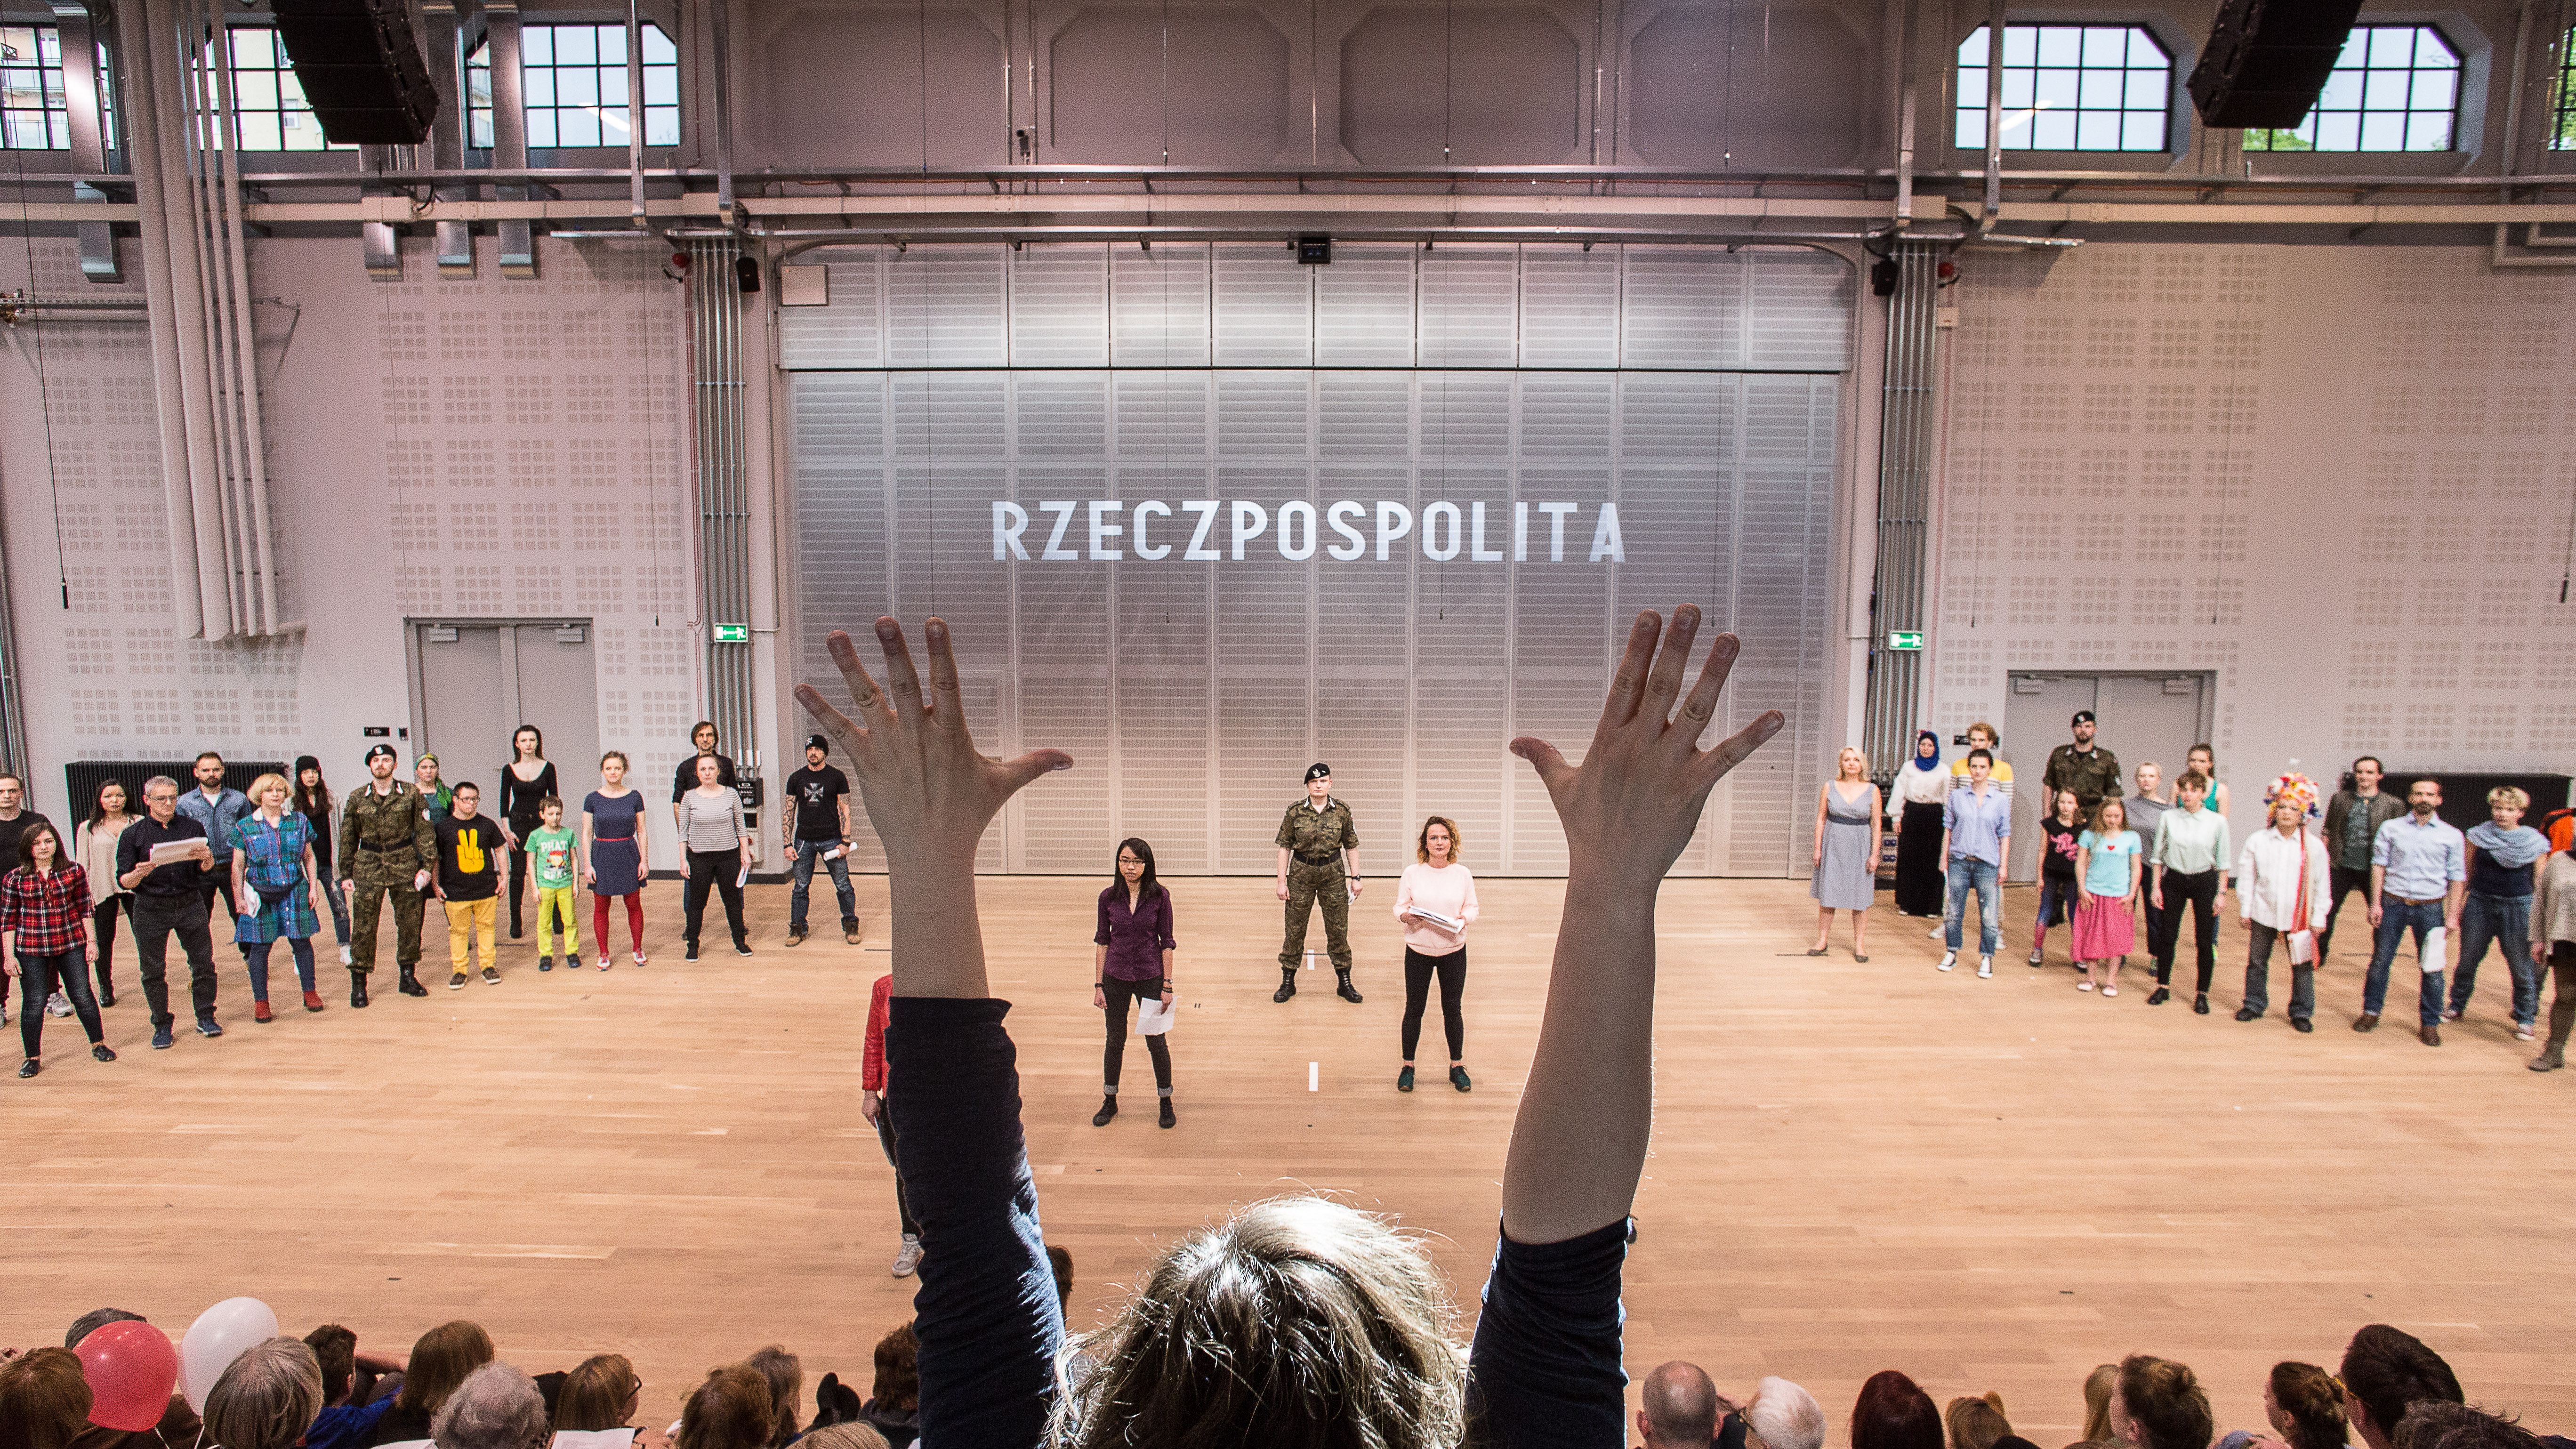 'Constitution for the Chorus of Poles', devised, directed and written by Marta Górnicka, premiere: 1.05.2016, Nowy Theatre in Warsaw. Photo: Robert Rumas.